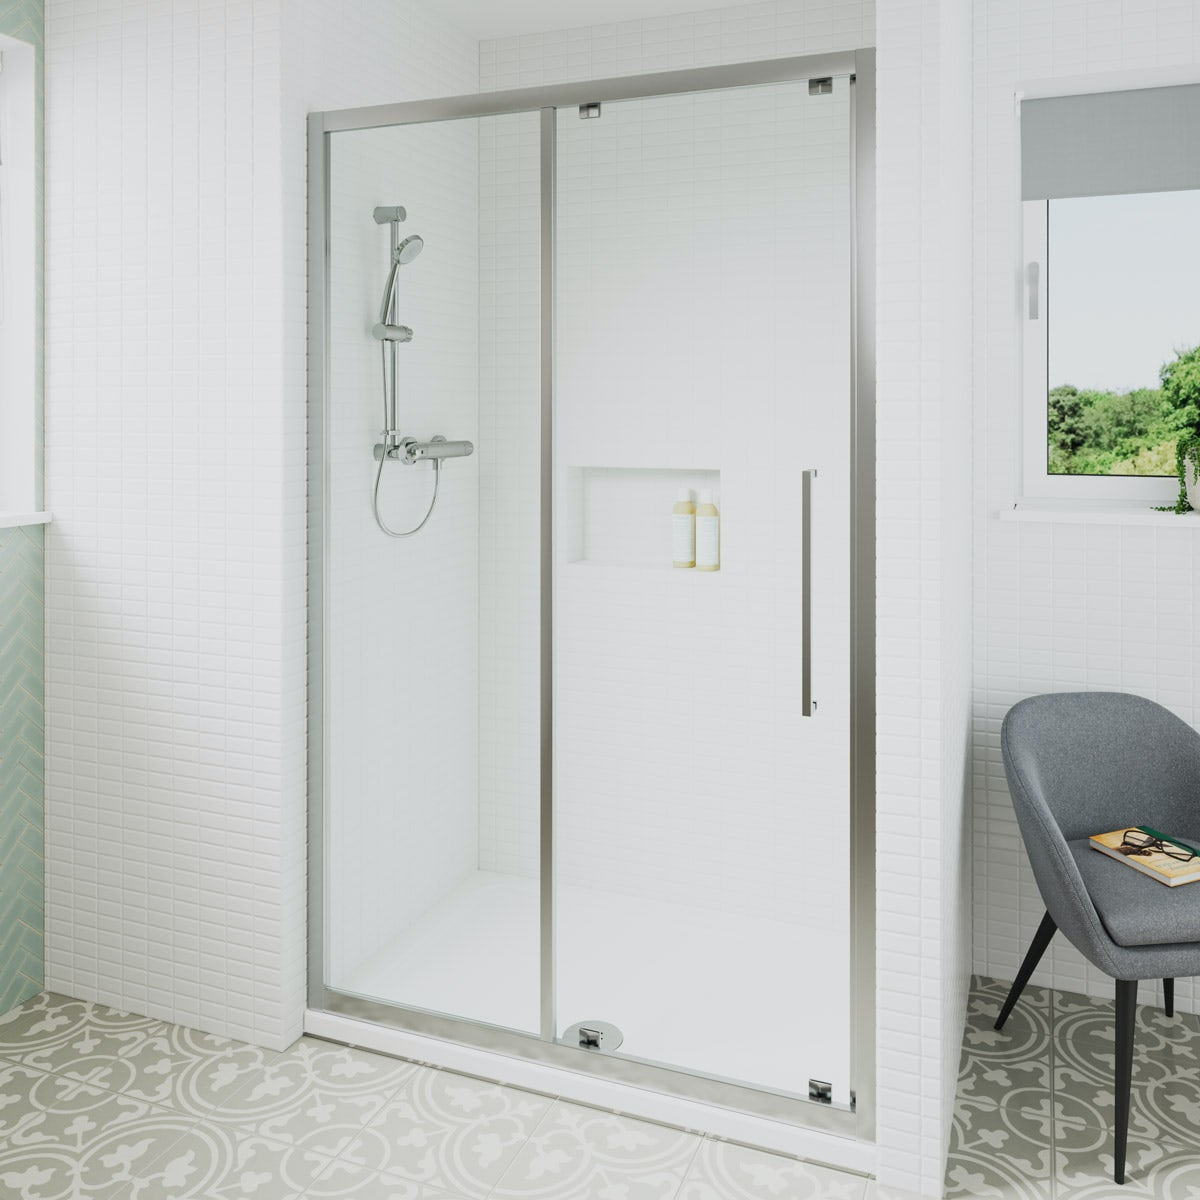 Ideal Standard 6mm sliding rectangular shower door with tray